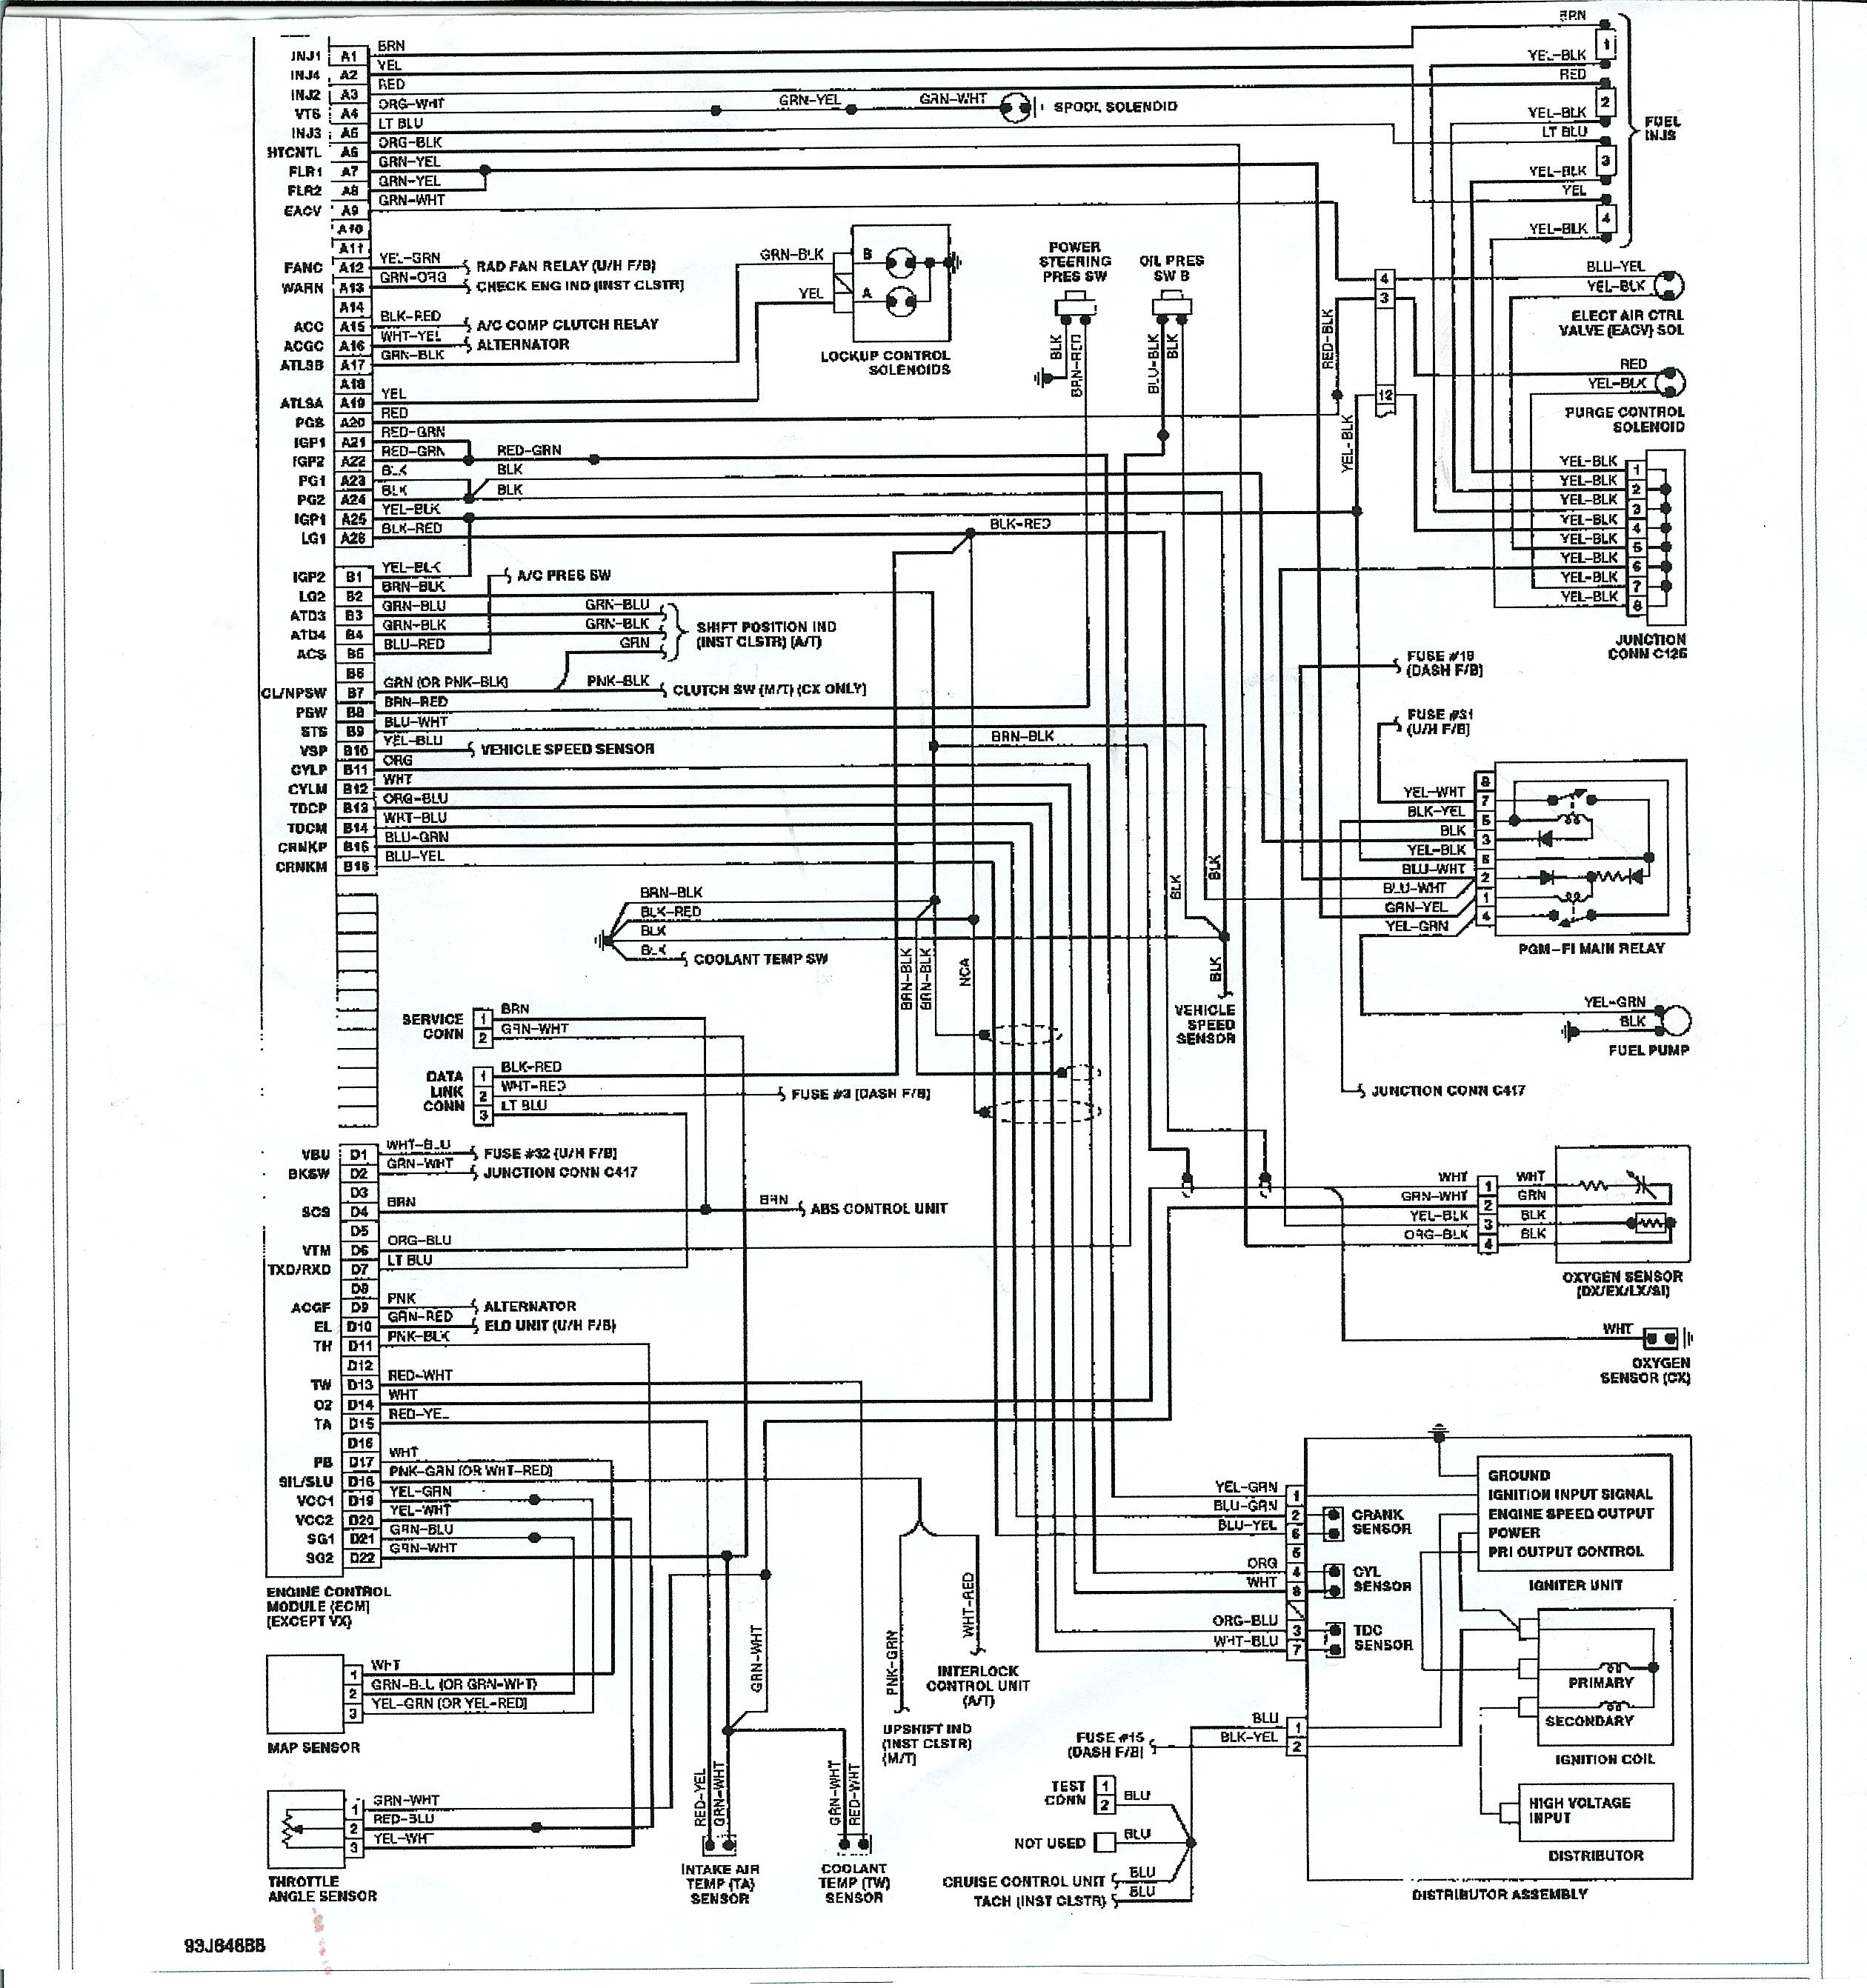 403660d1445082998 integra tcm wiring schematic auto swap dxecu integra wiring diagram integra timing marks \u2022 free wiring diagrams Basic Turn Signal Wiring Diagram at bayanpartner.co